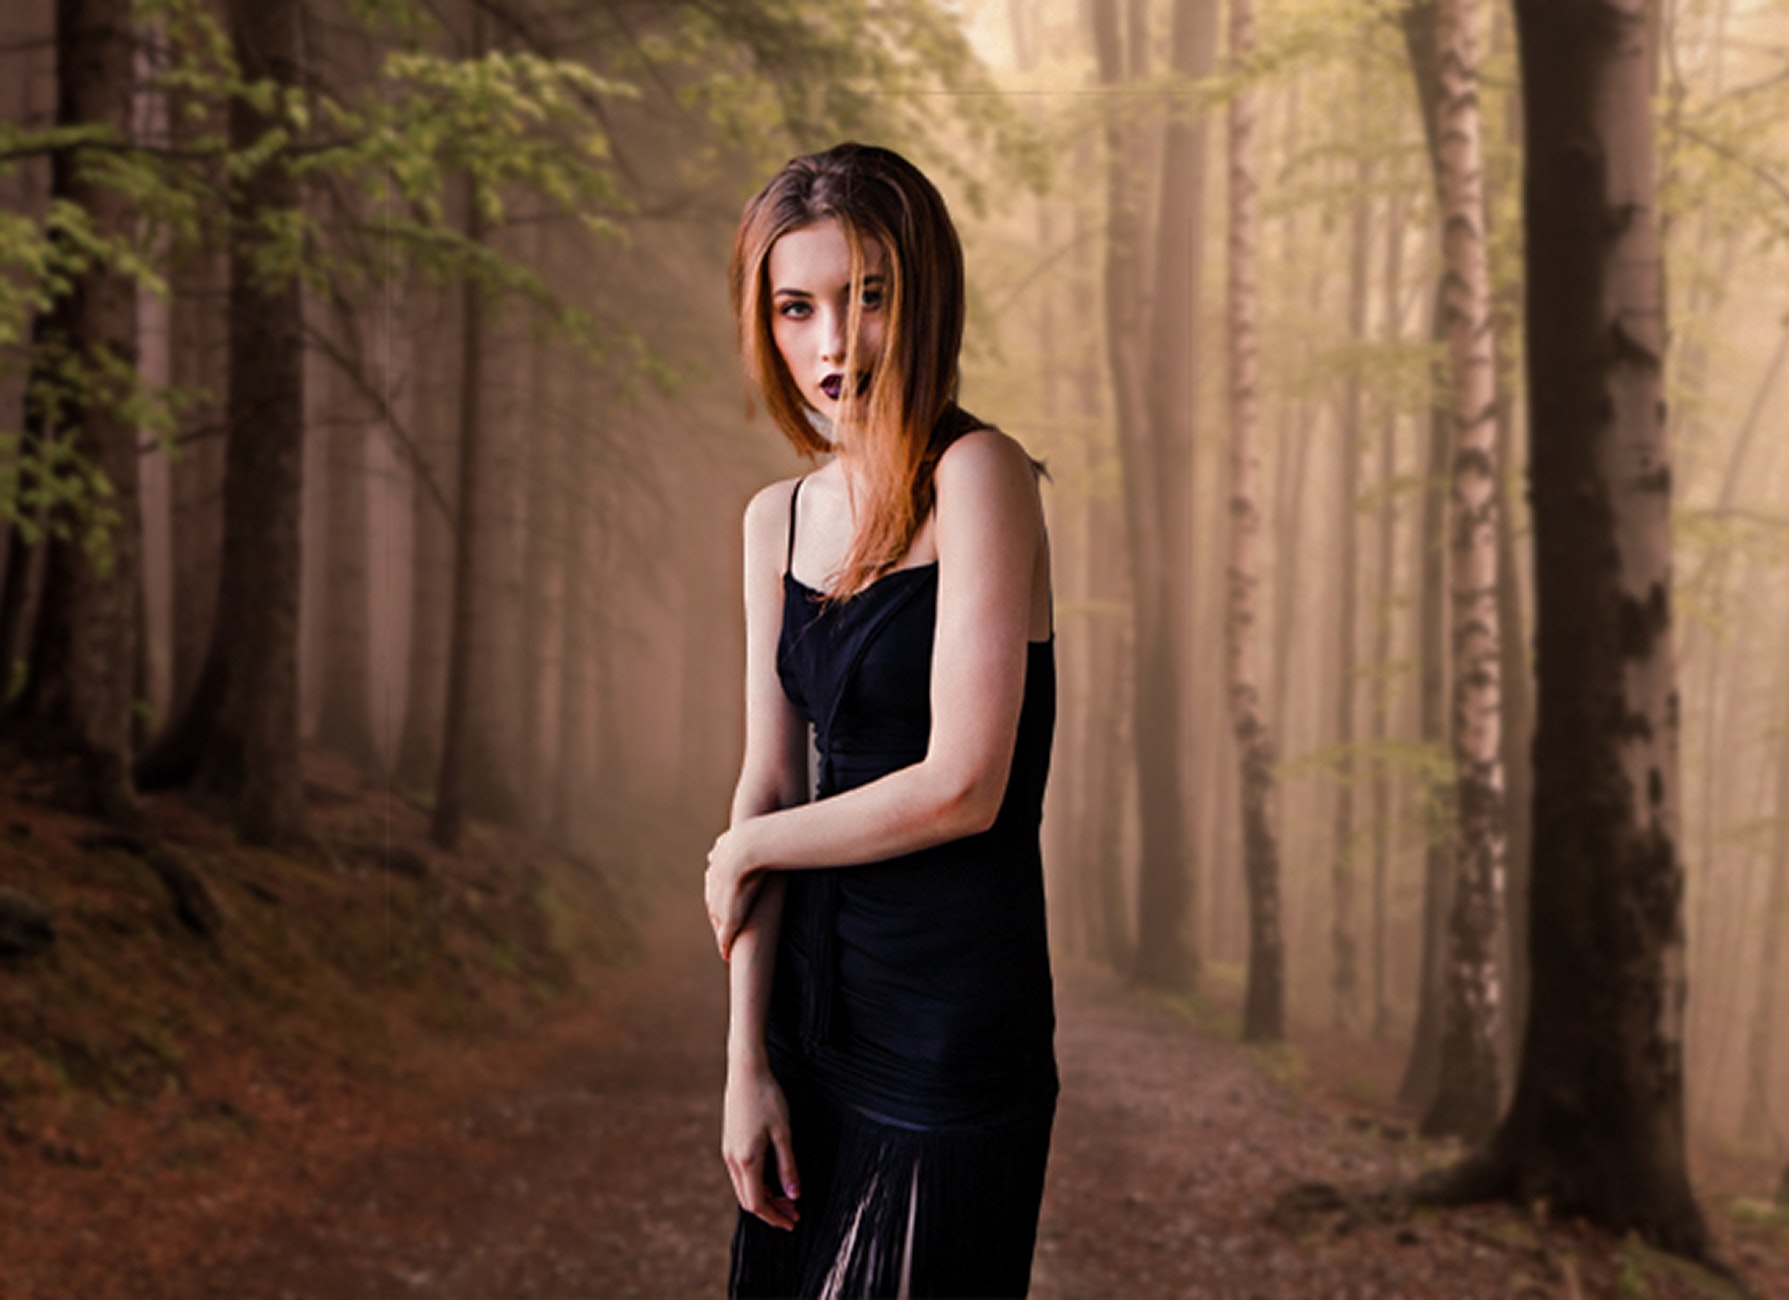 Portrait of Young Woman in Forest, Adult, Pretty, Outdoors, Person, HQ Photo